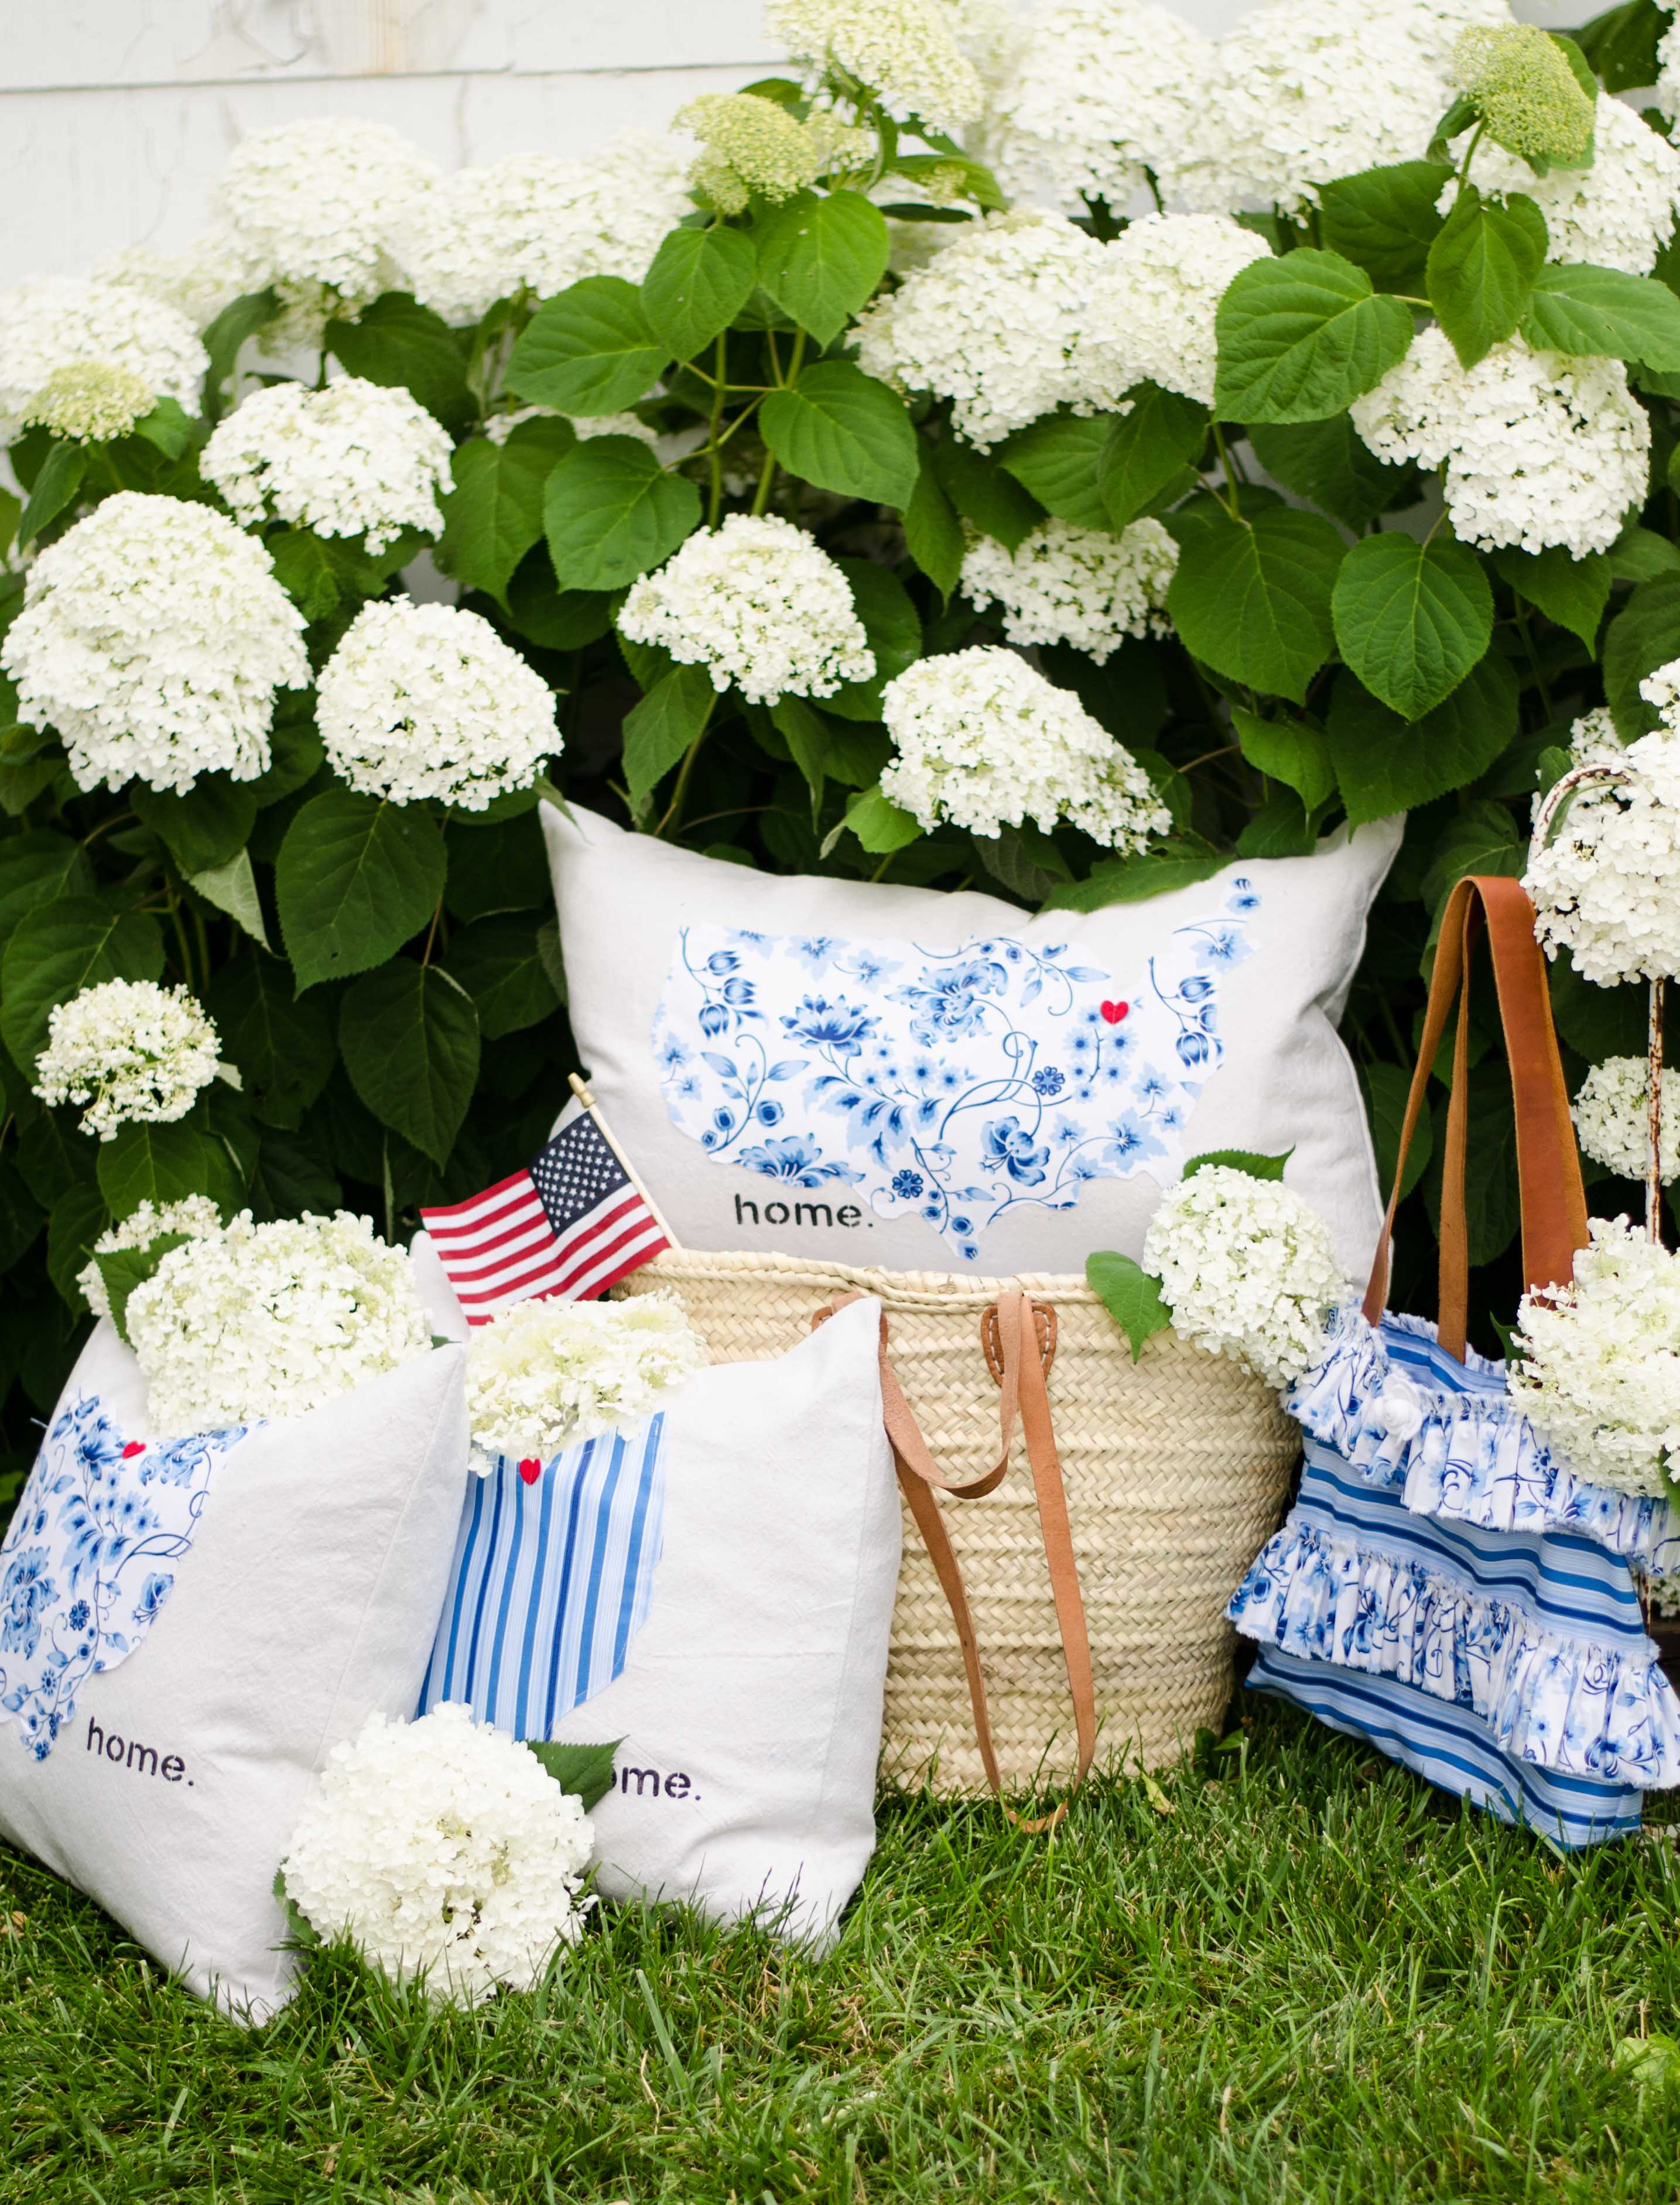 sweet tea fabric by thistlewood farms stripes and floral in handbag and pillows